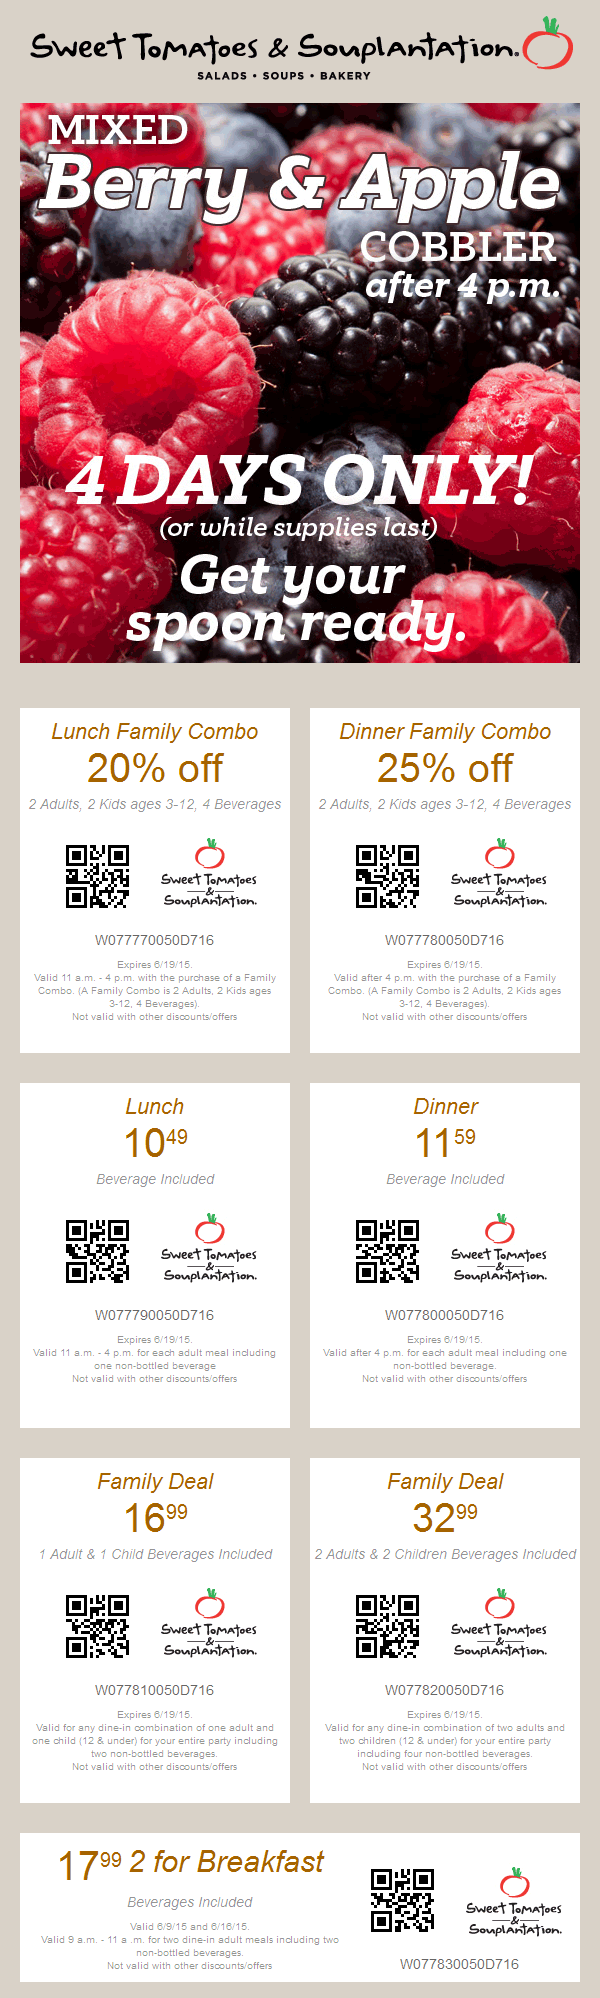 Sweet Tomatoes Coupon June 2017 20% off family lunch combo, 25% off dinner & more at Souplantation & Sweet Tomatoes